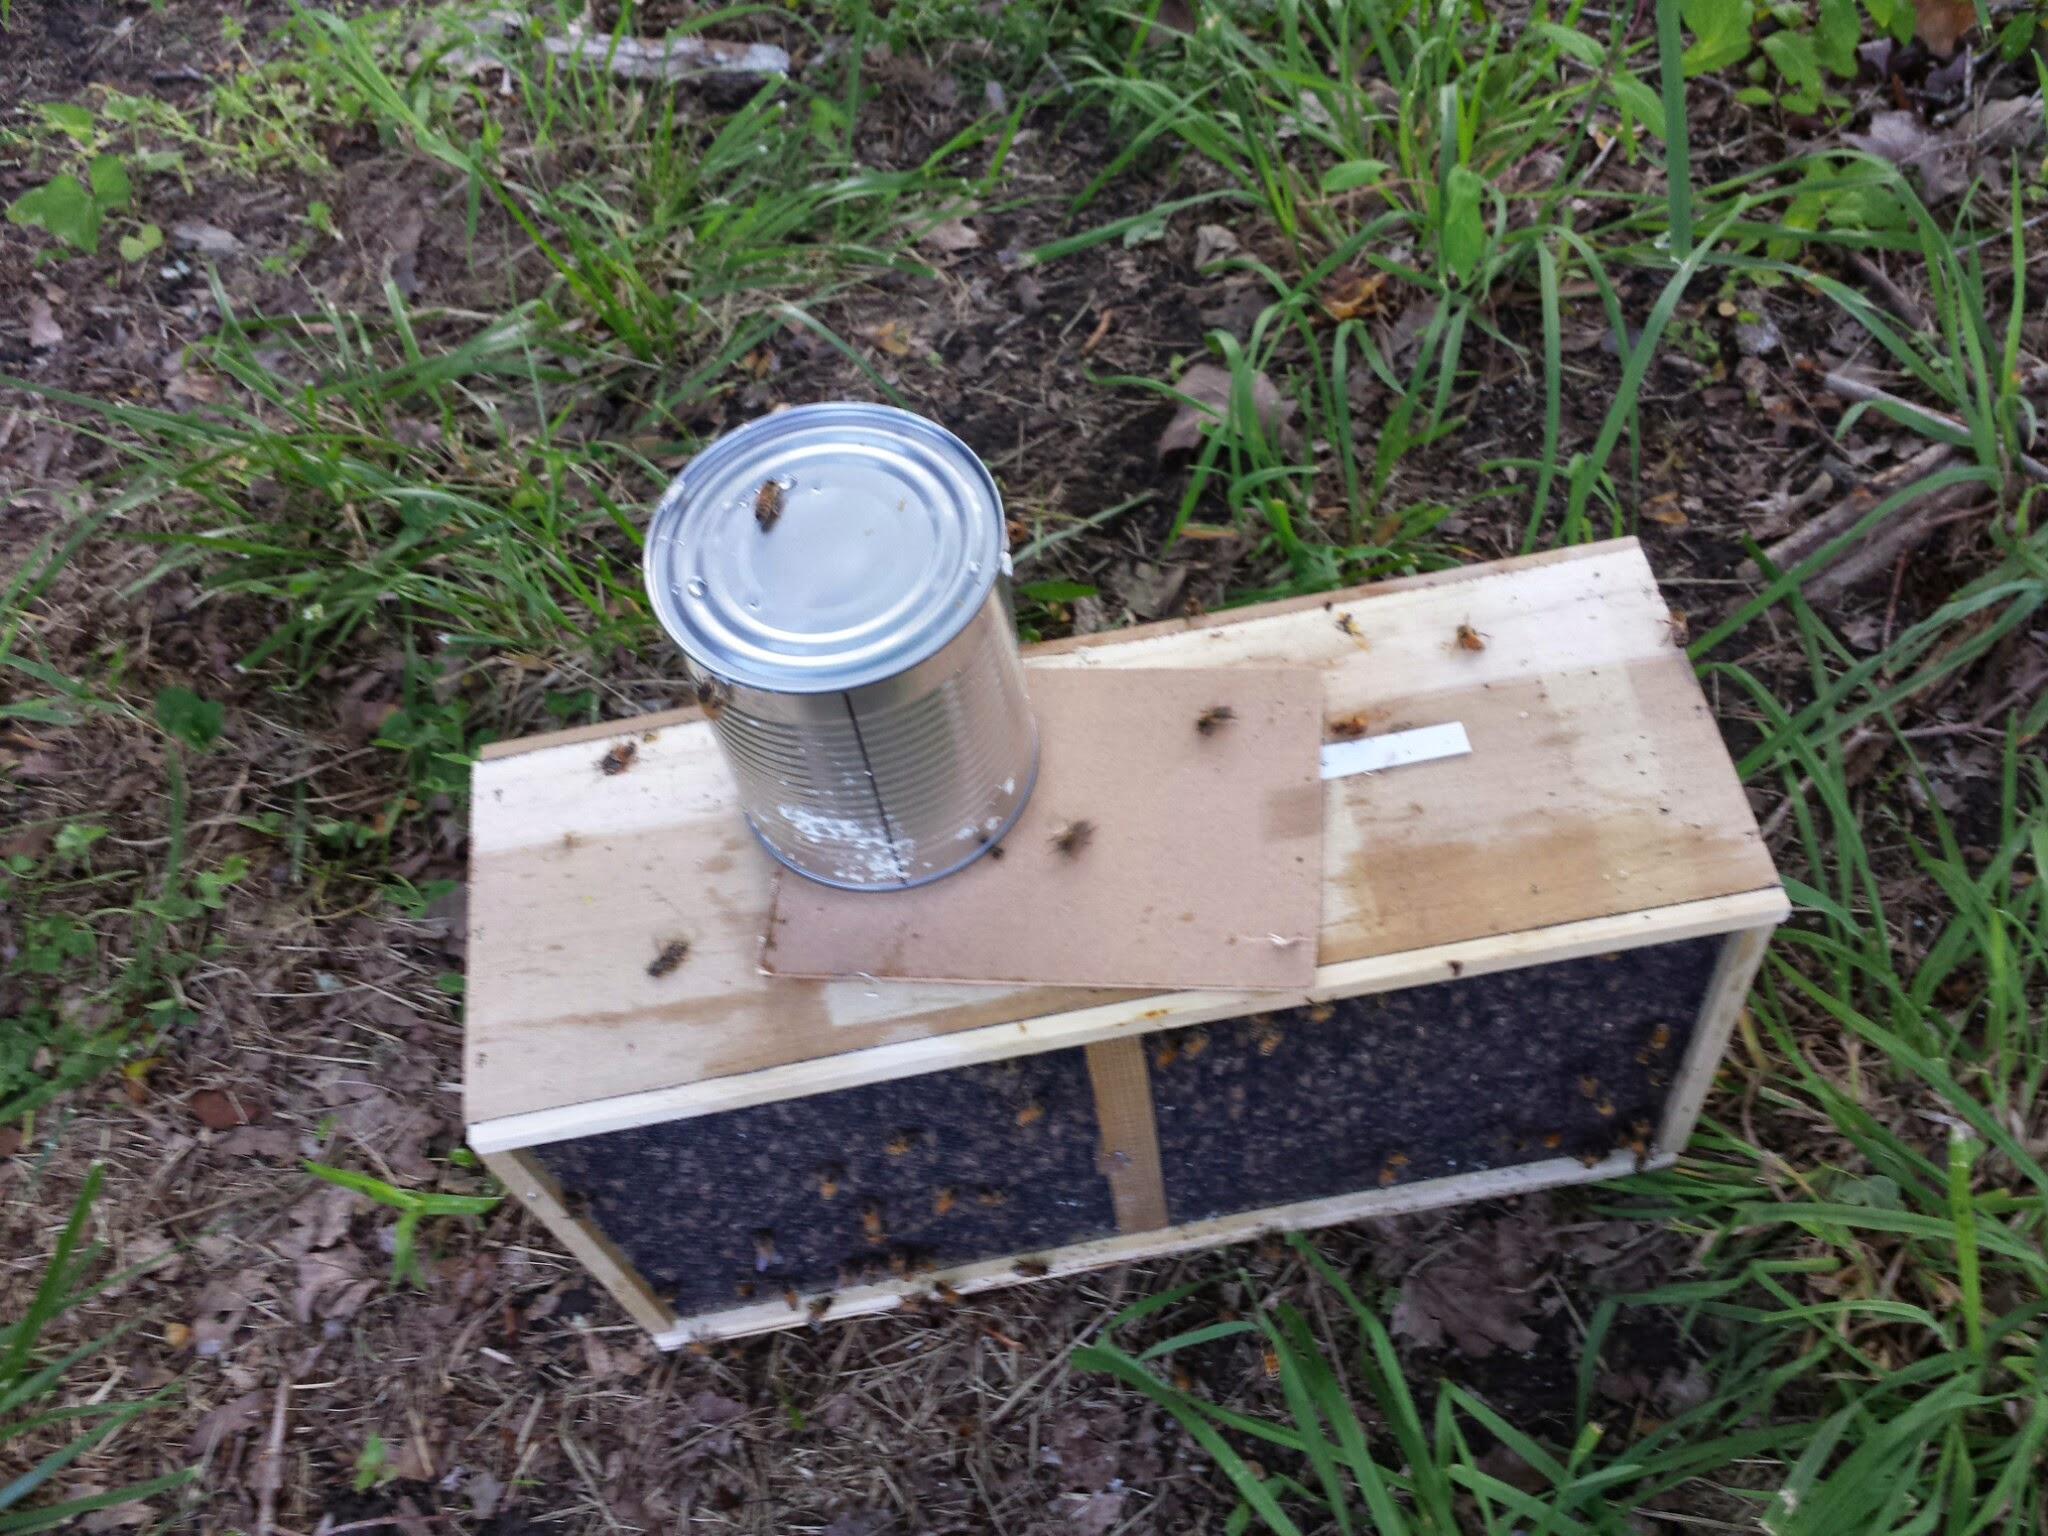 Pulled the can out and set the wooden cover or shield over the now wide-open package. We want to keep the bees inside for now.